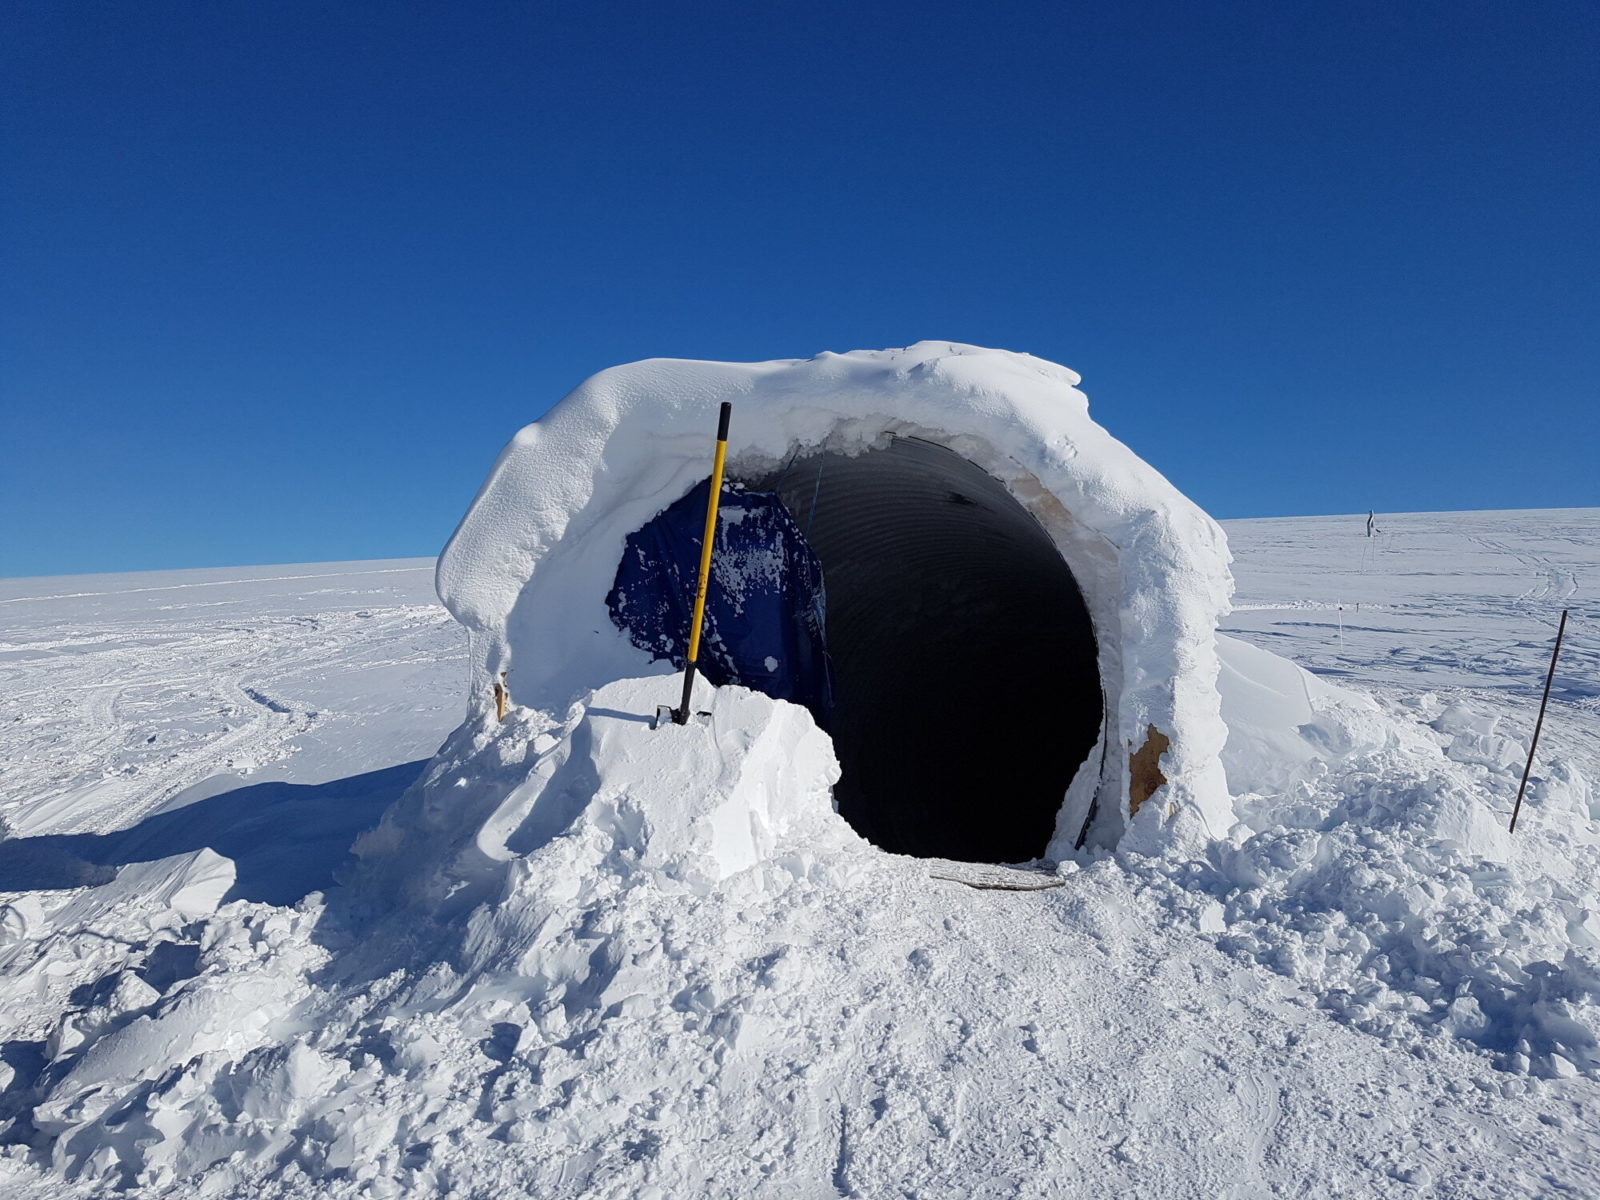 No this is not a remote research station where aliens lurk inside. This is a lot better.